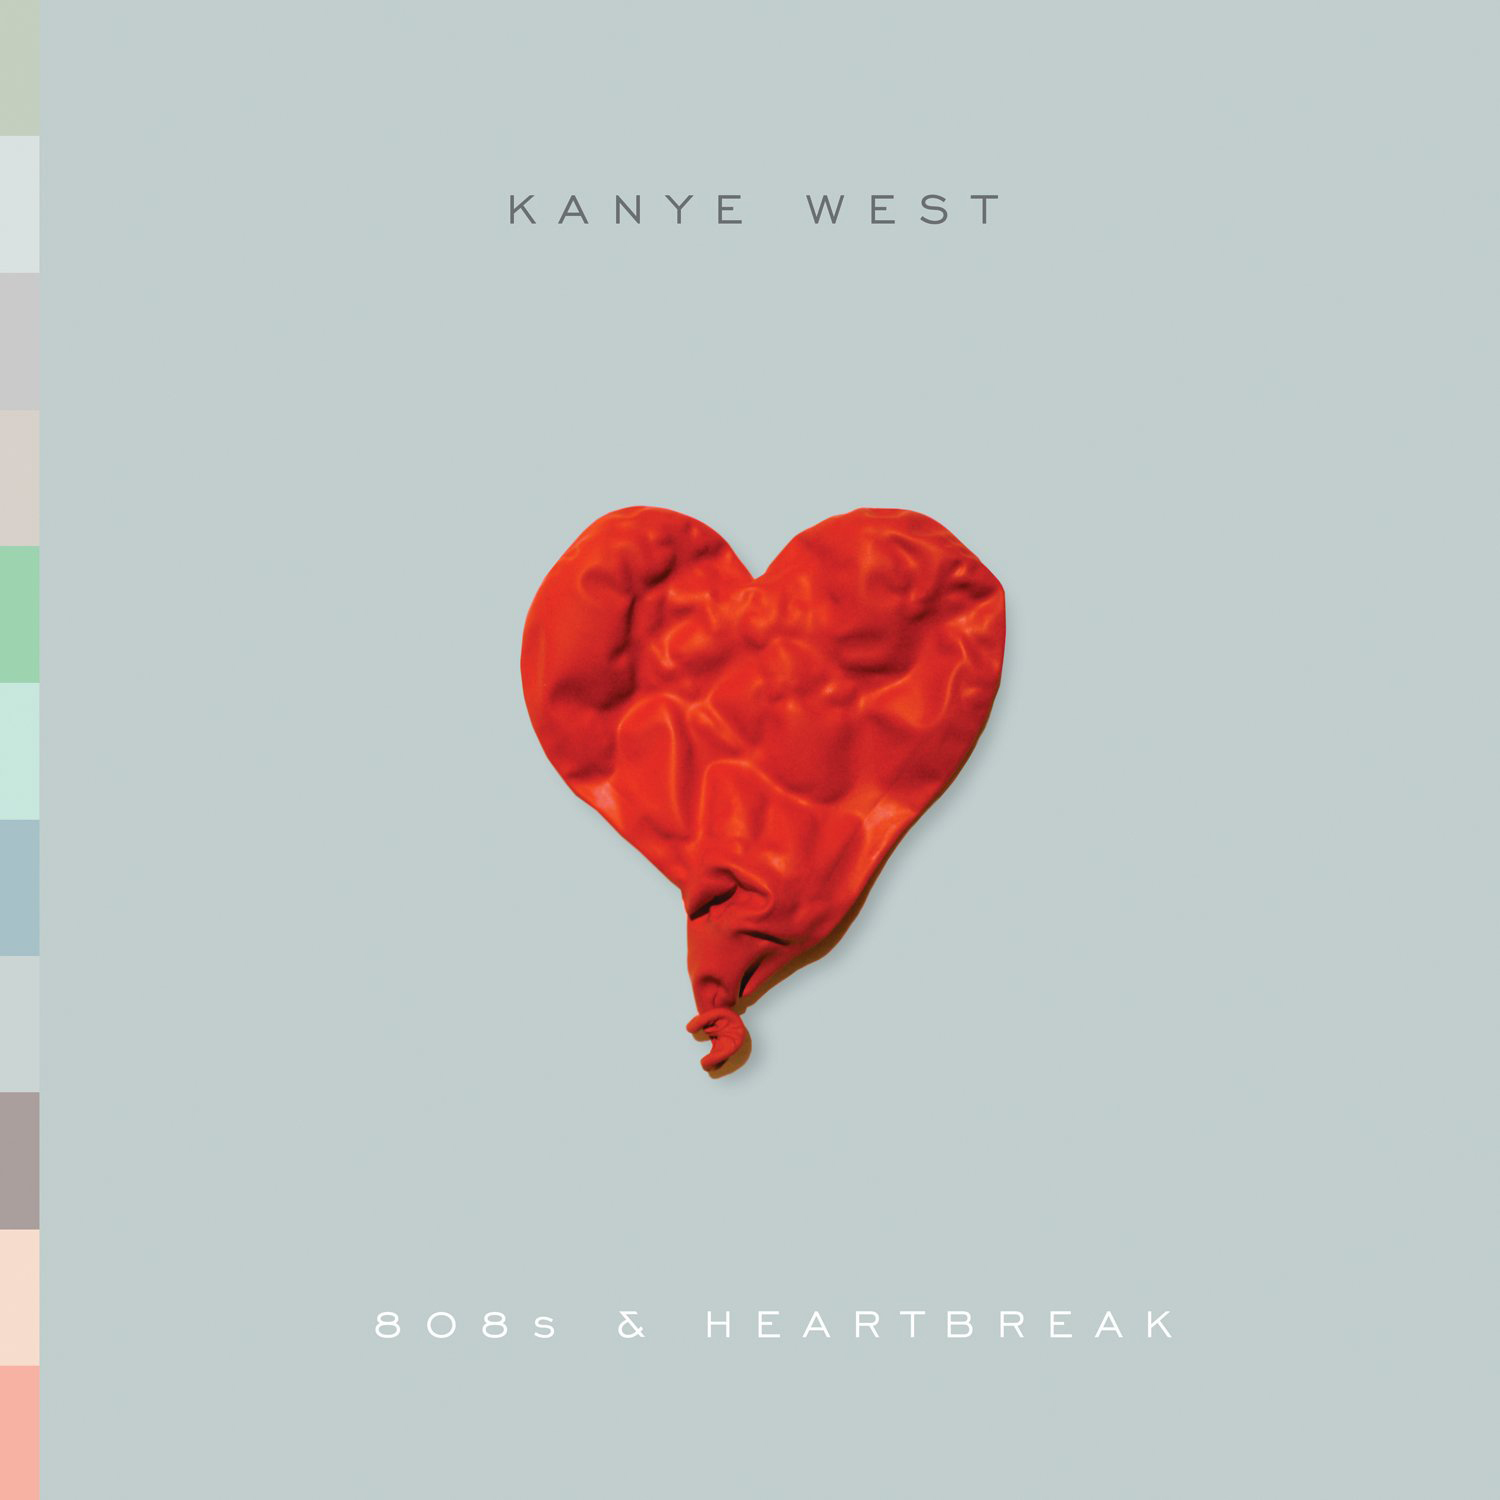 1418000496_10_808s_and_heartbreak_2008_alternate_version_kanye_west_album_covers_46.jpg